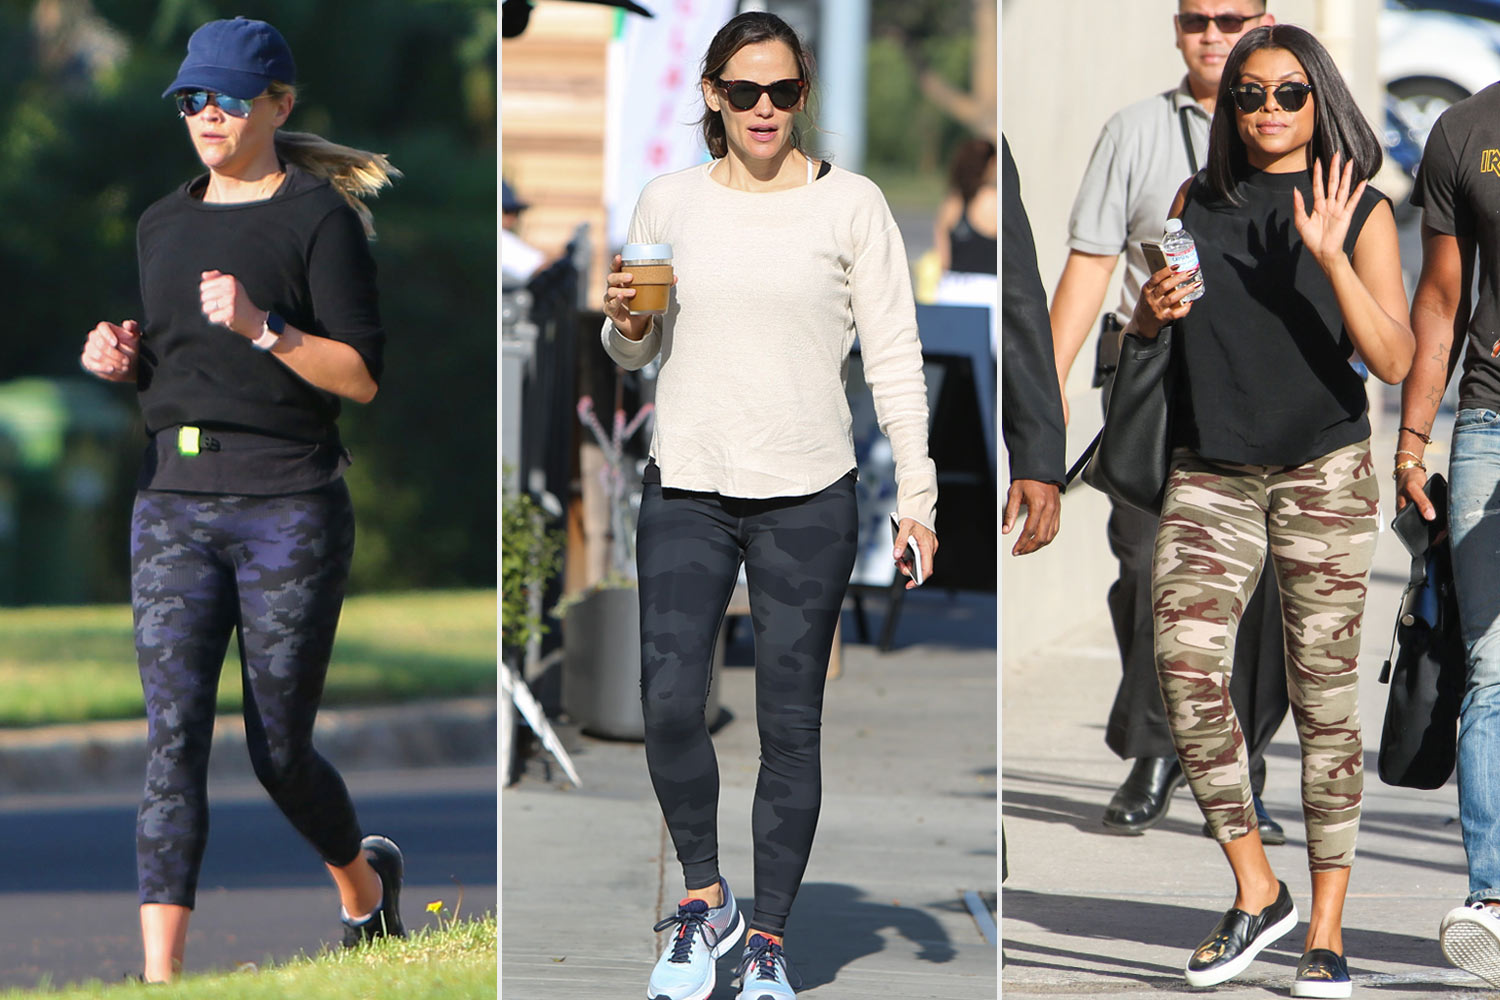 Reese Witherspoon, Jennifer garner and tarsi p henson